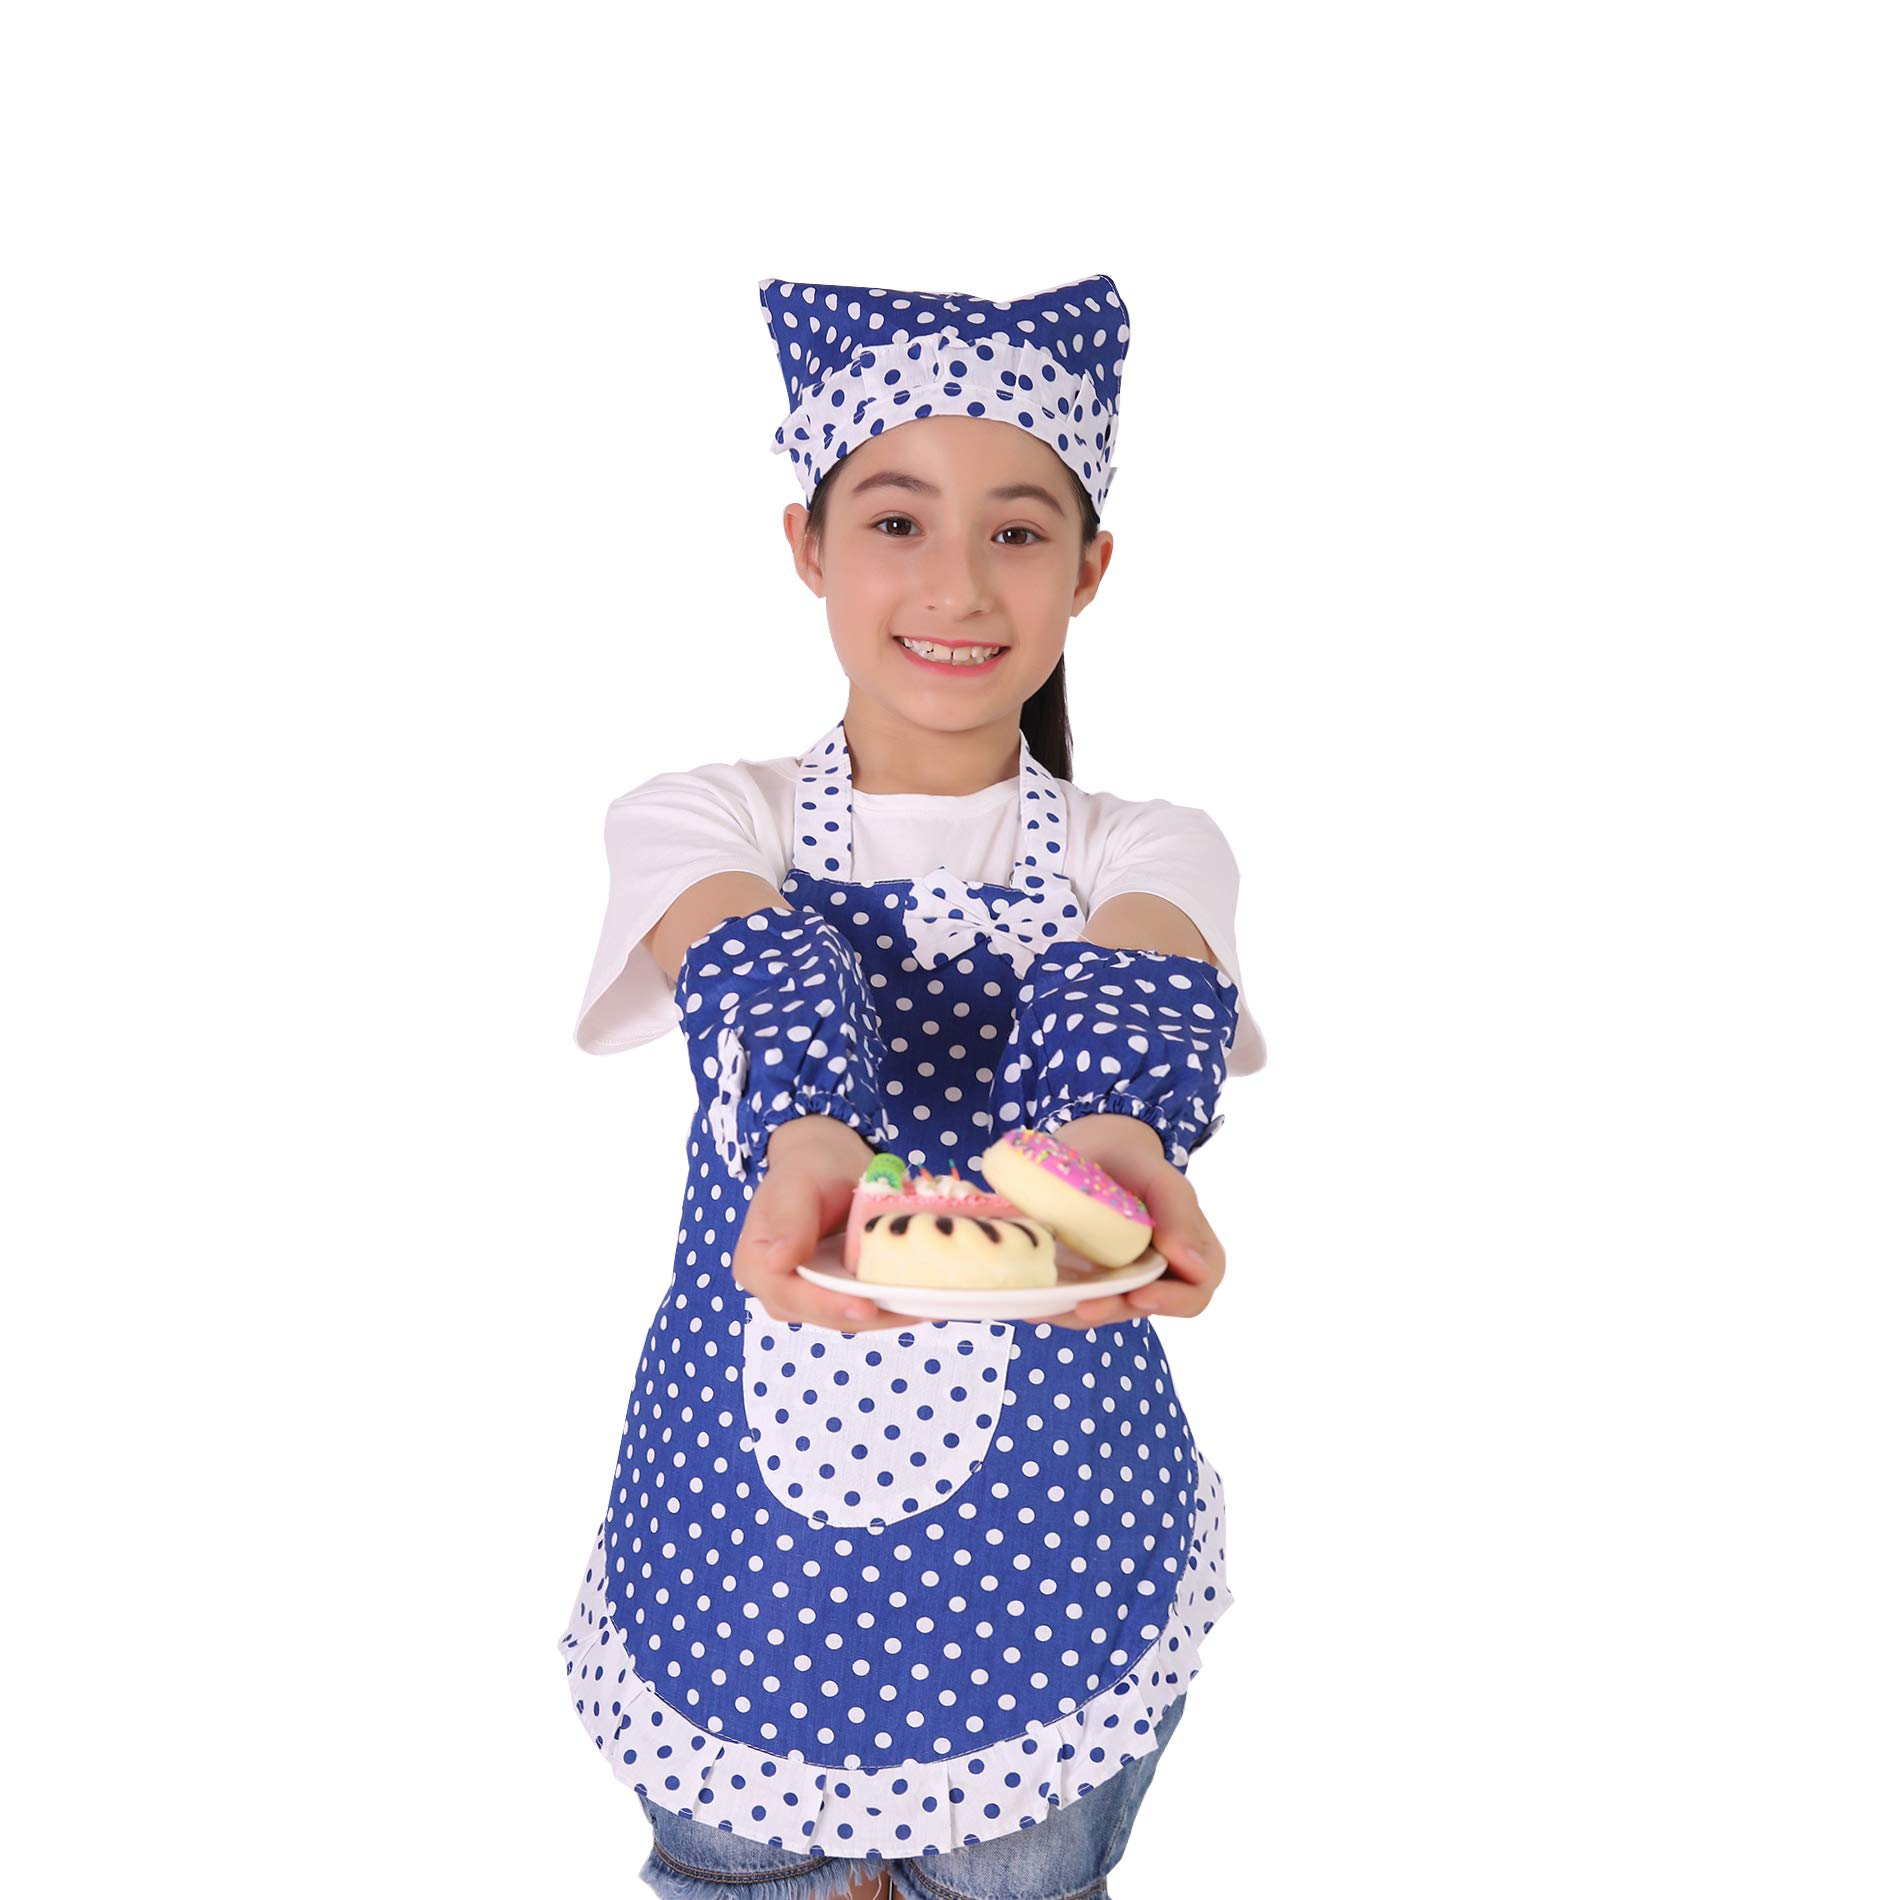 Kids Cooking and Baking Set - 3 Piece Kids\' Cooking Kits Includes Apron, Sleevelet, Headkerchief For 2 to 6 Year Old Girls or Boys (Blue)